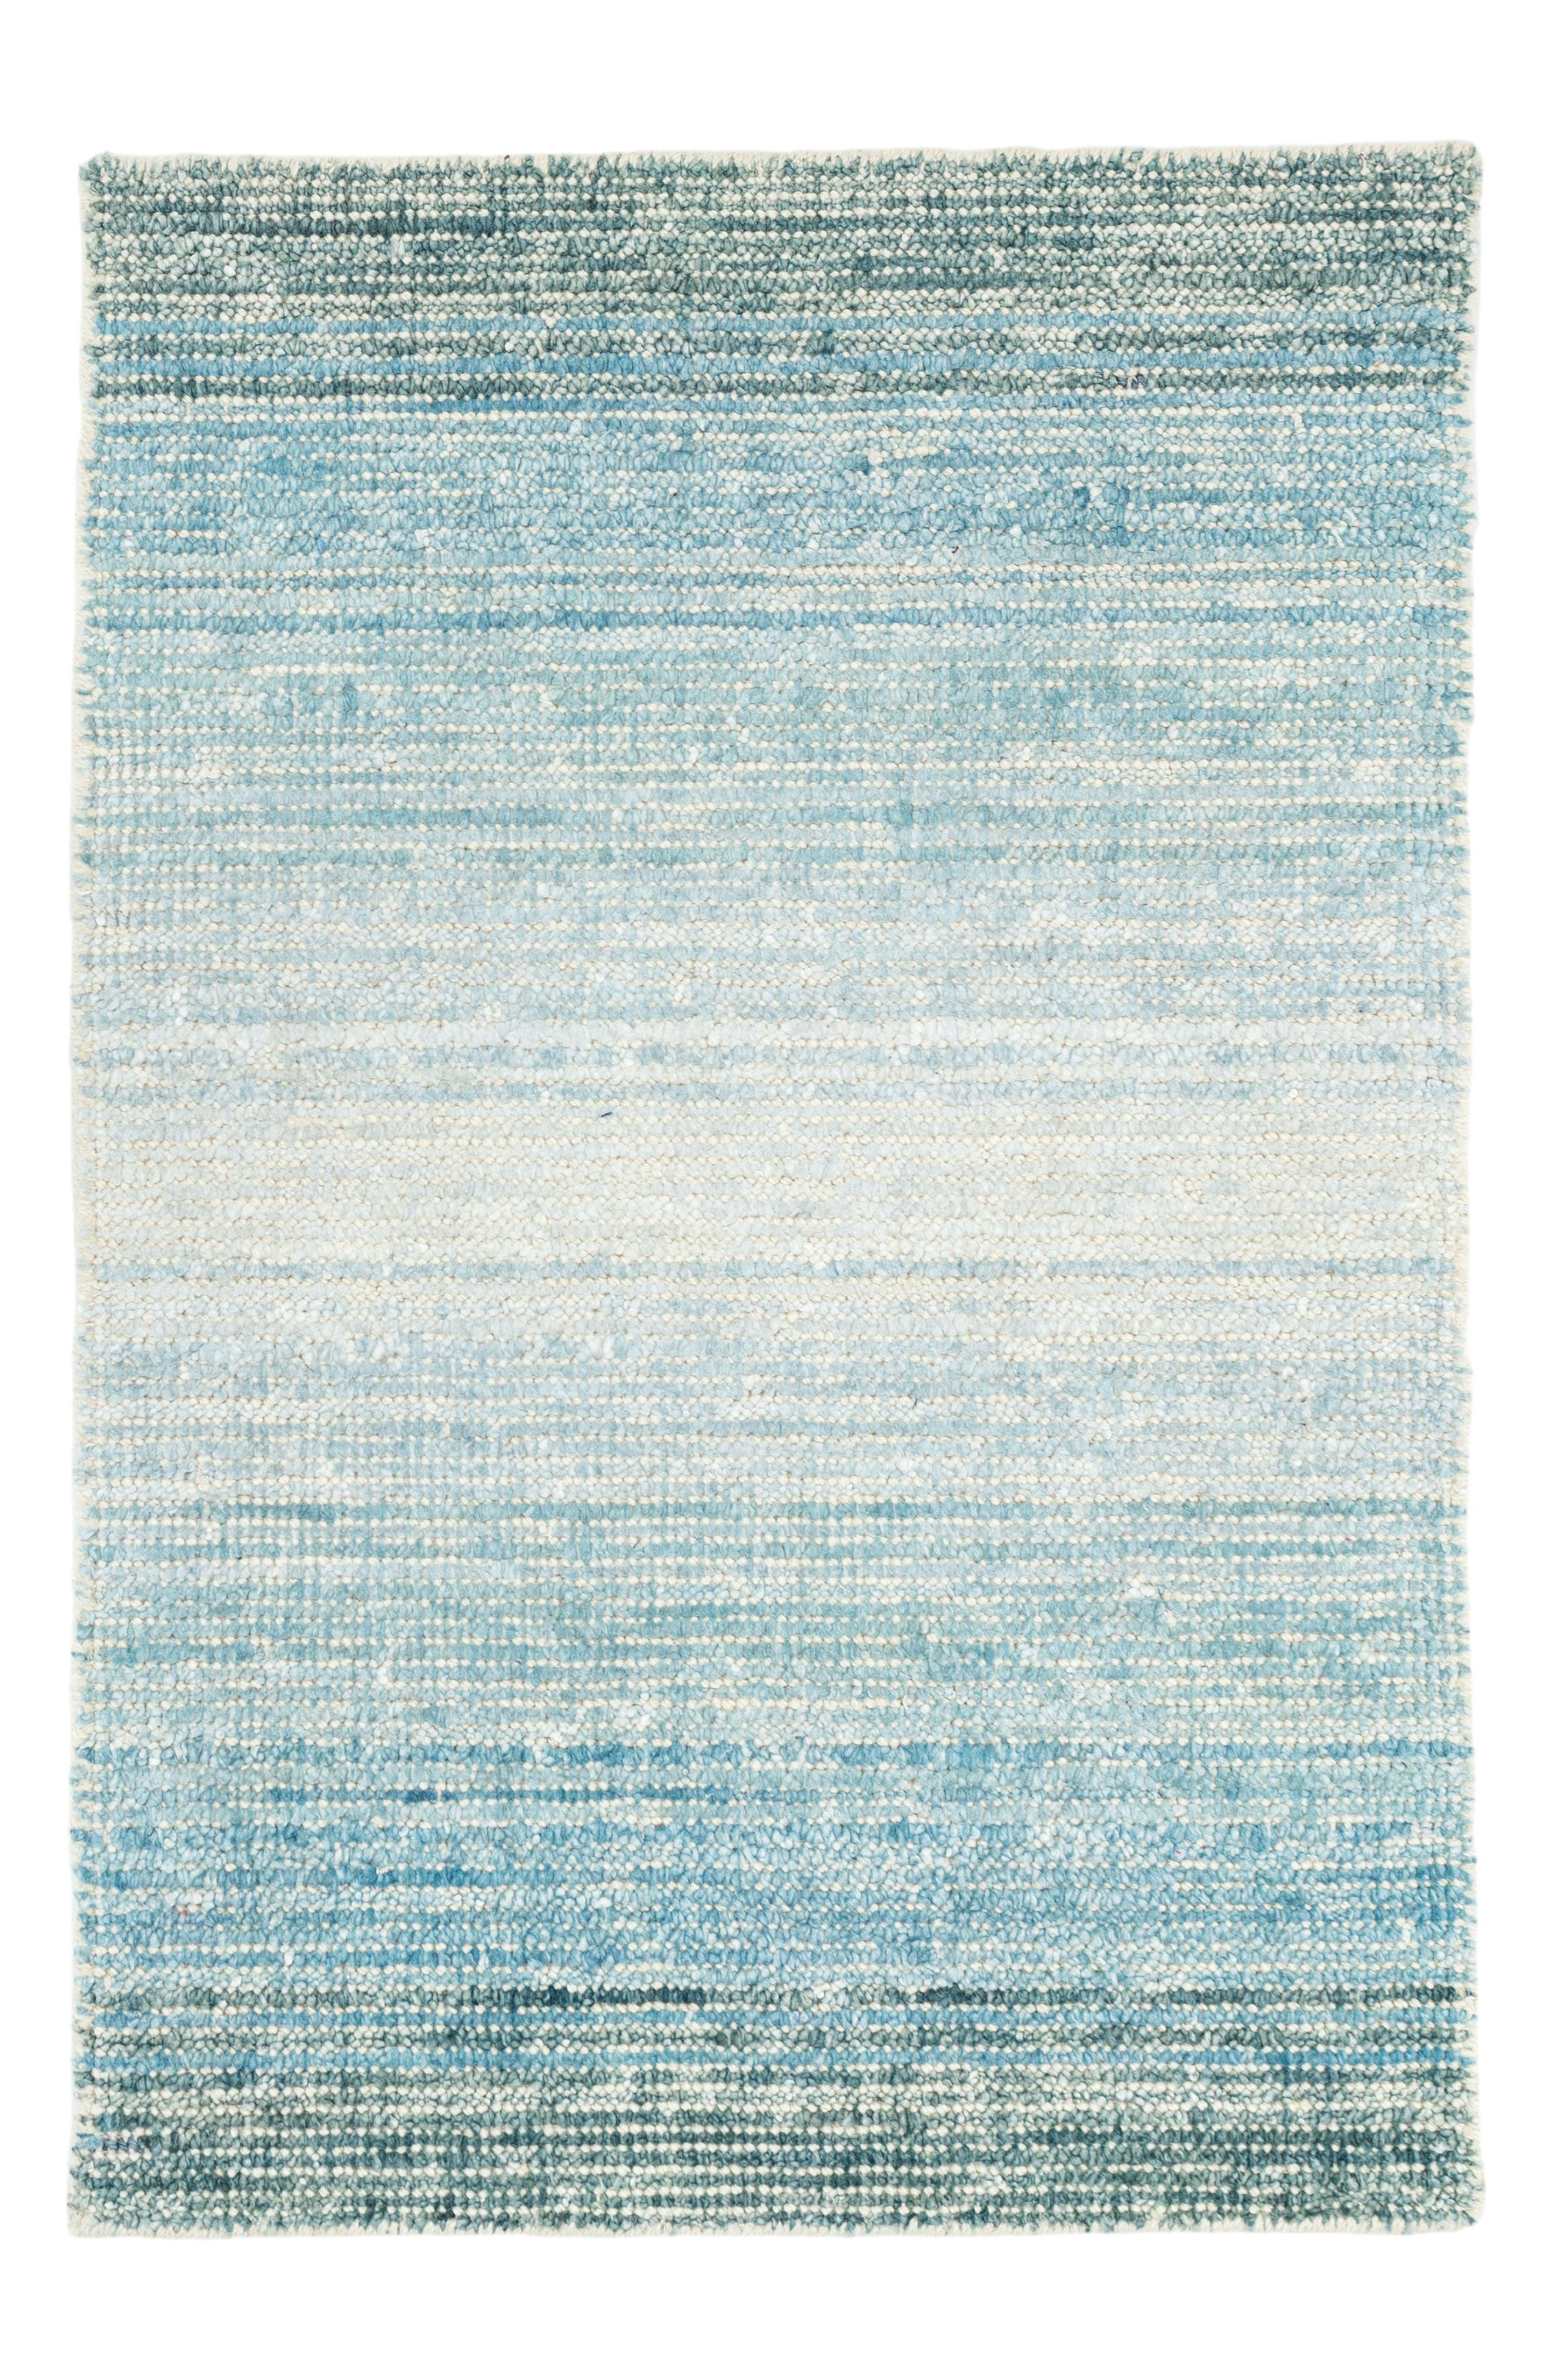 Sky Moon Handwoven Rug,                         Main,                         color, 400